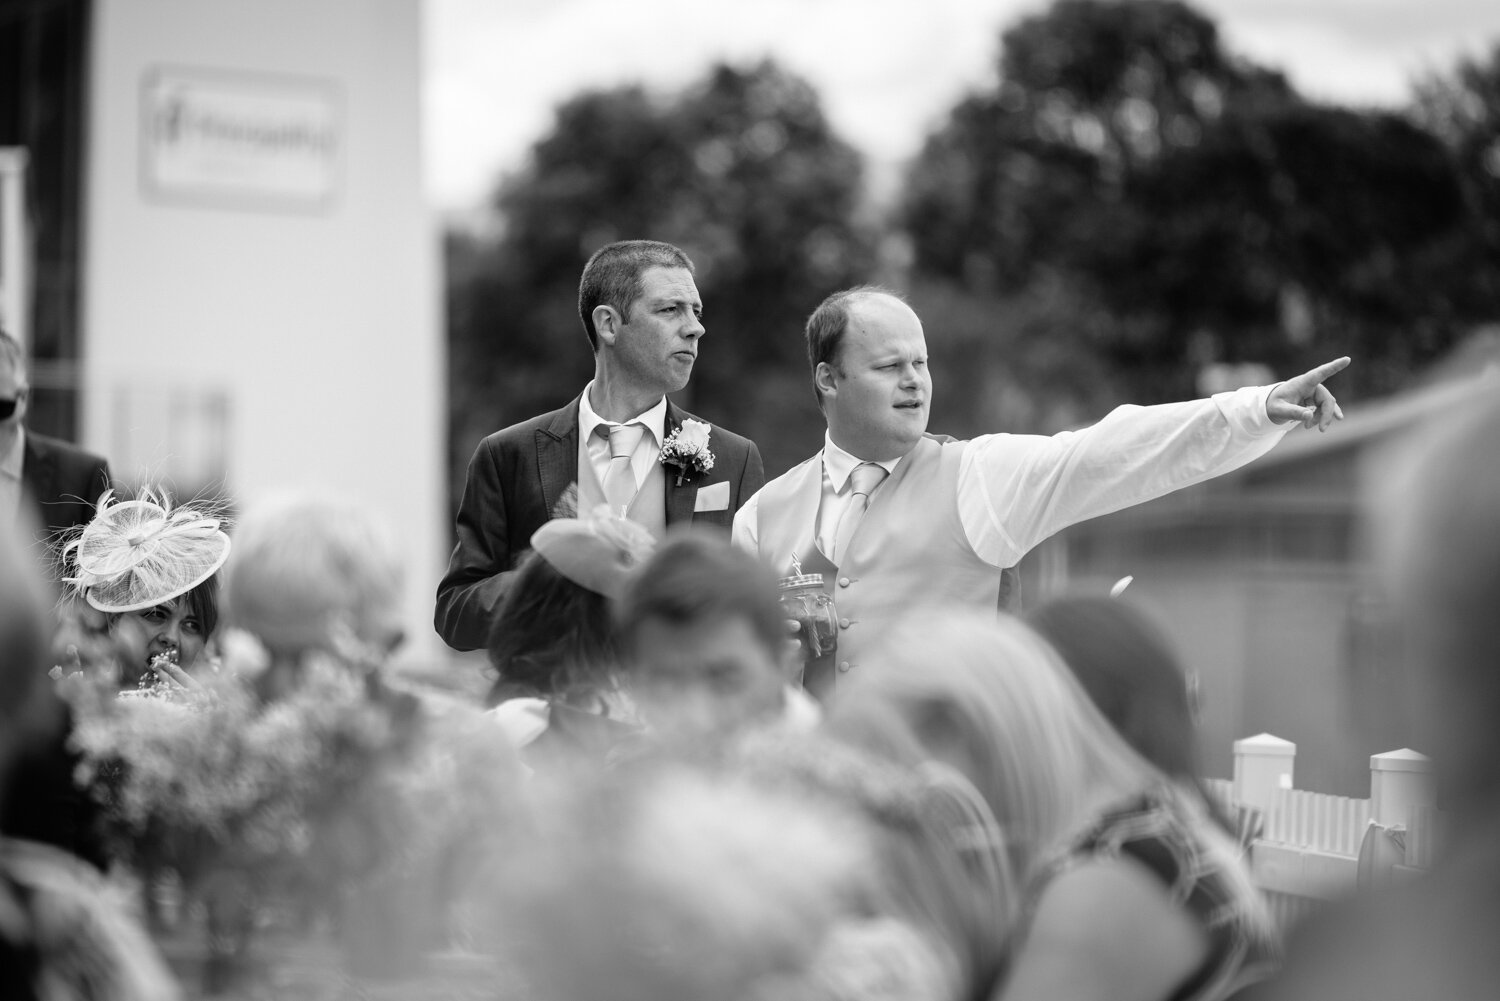 Groom and usher pointing to the distance